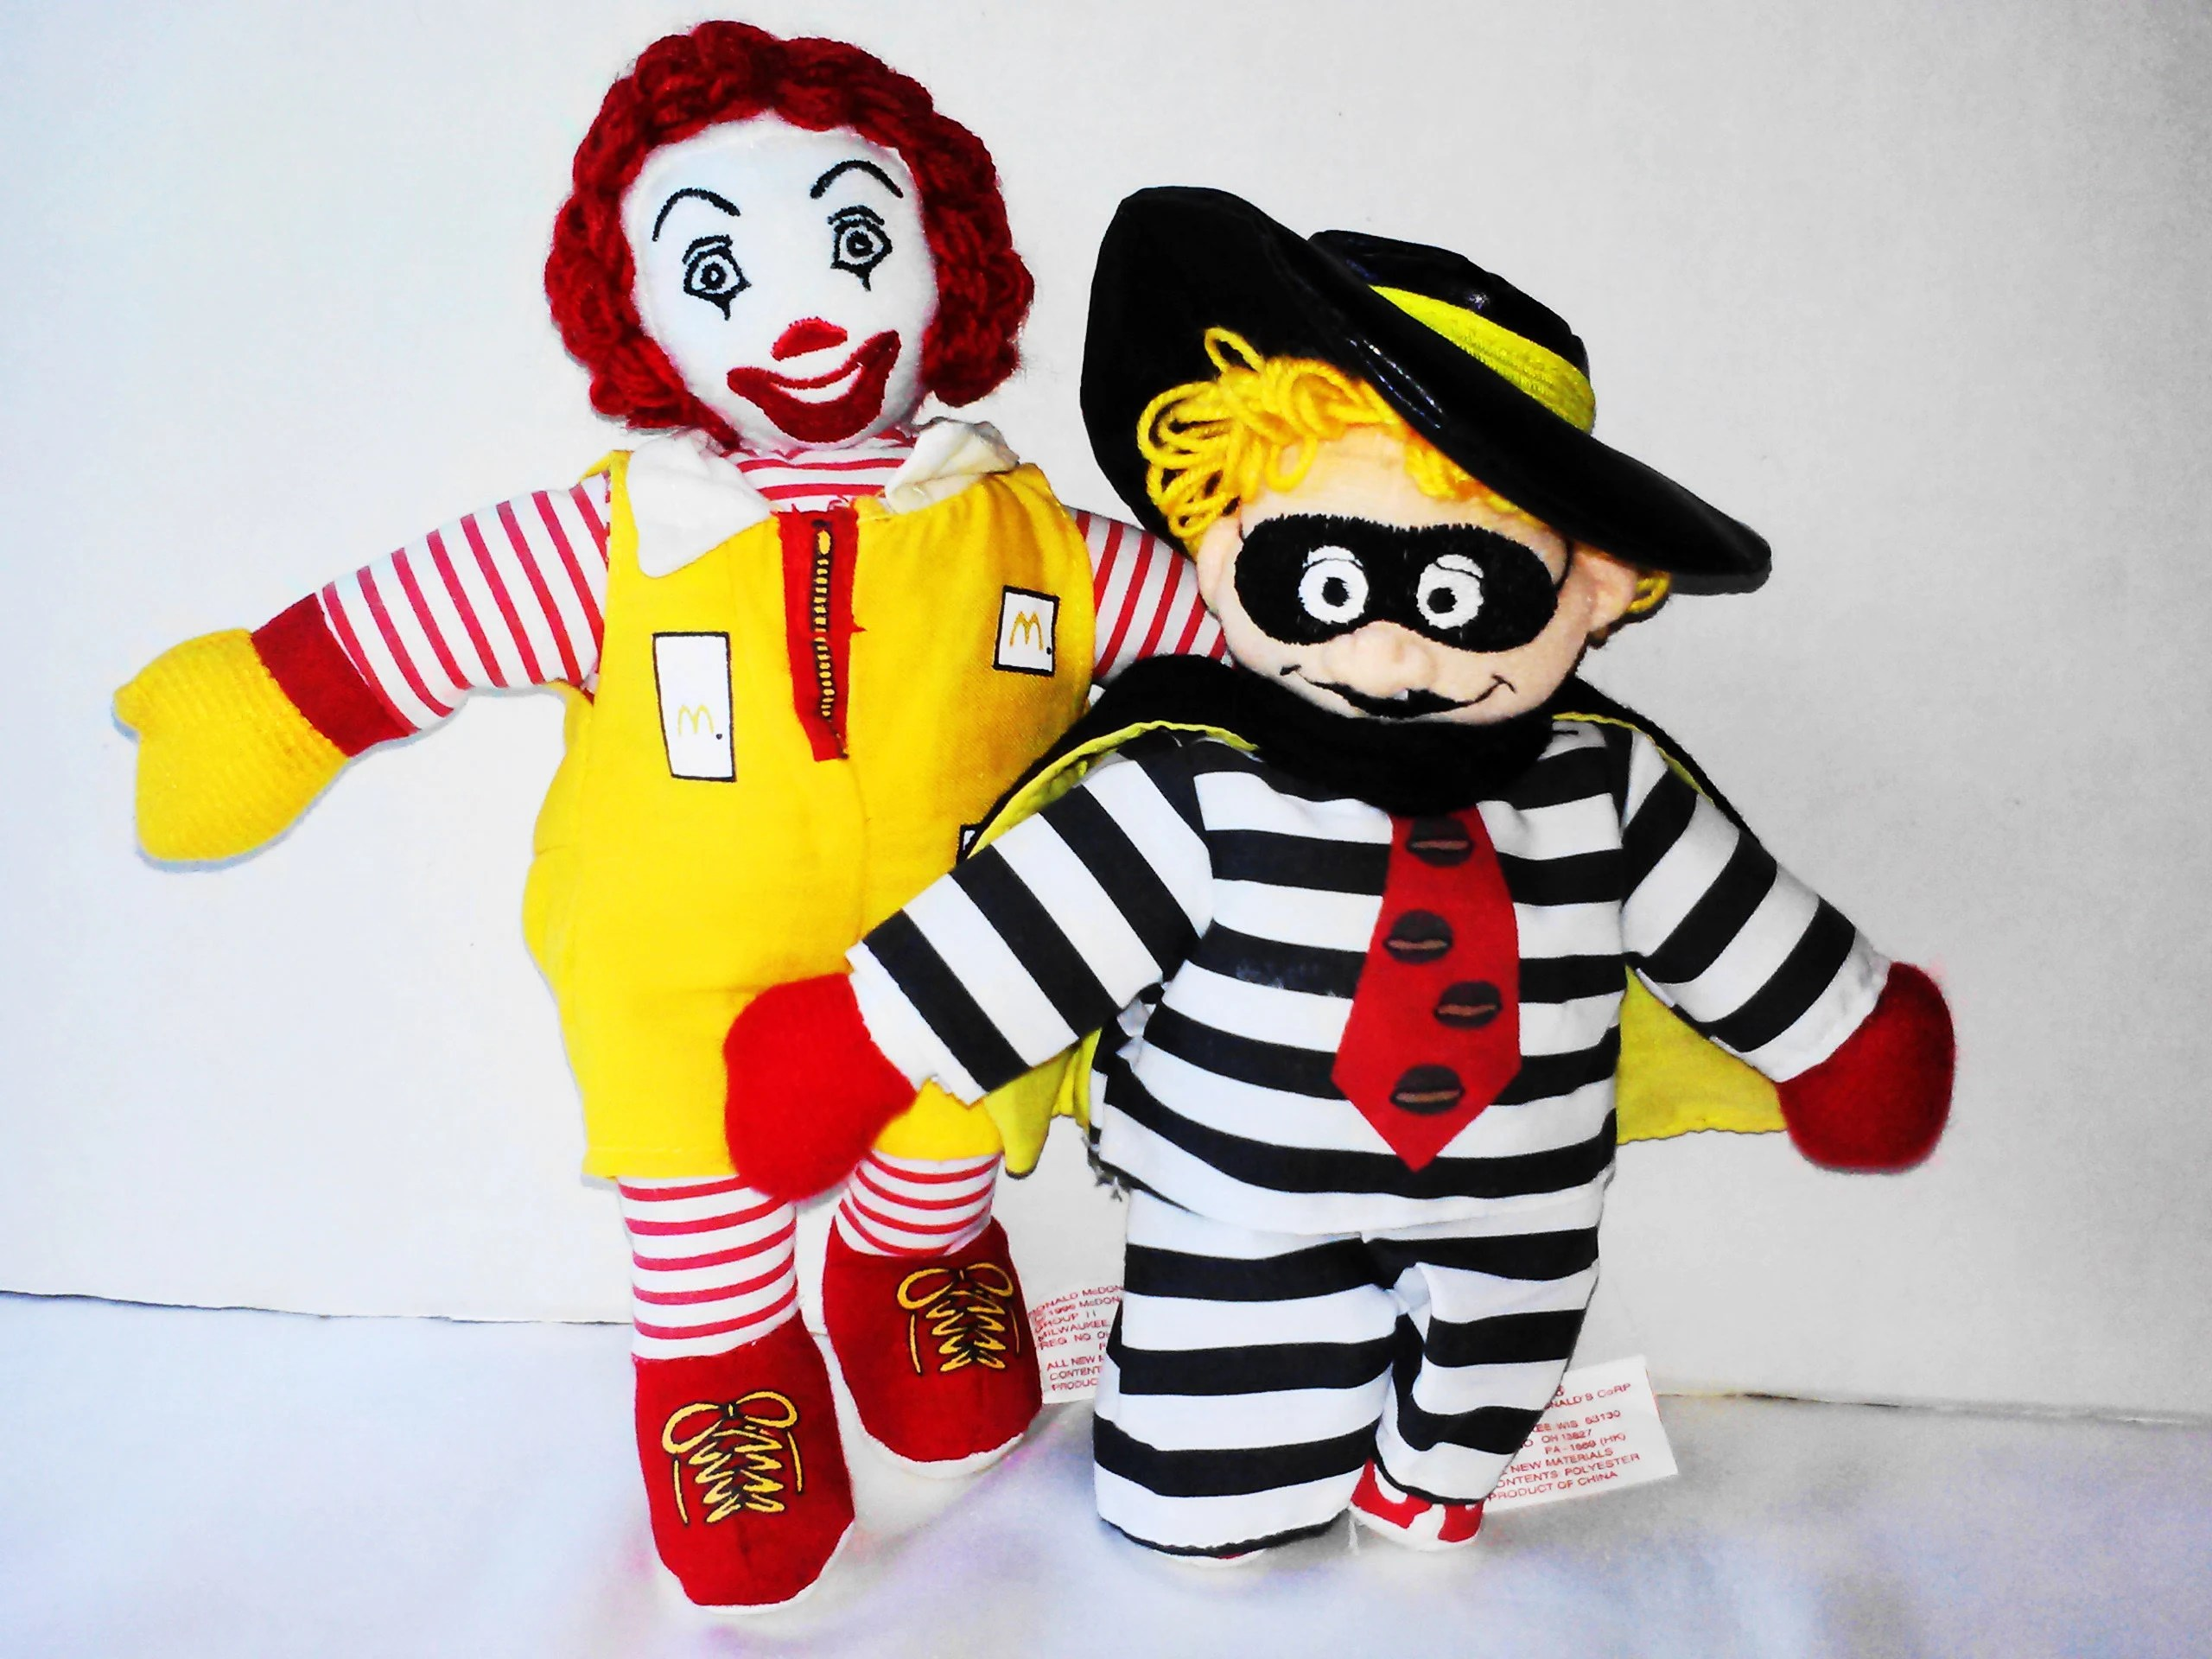 Wanddeko Clown Mcdonalds Stuffed Clown Doll Toy Ronald Mcdonald Clown Doll Hamburgler Doll Toy Vintage Collectible Dolls